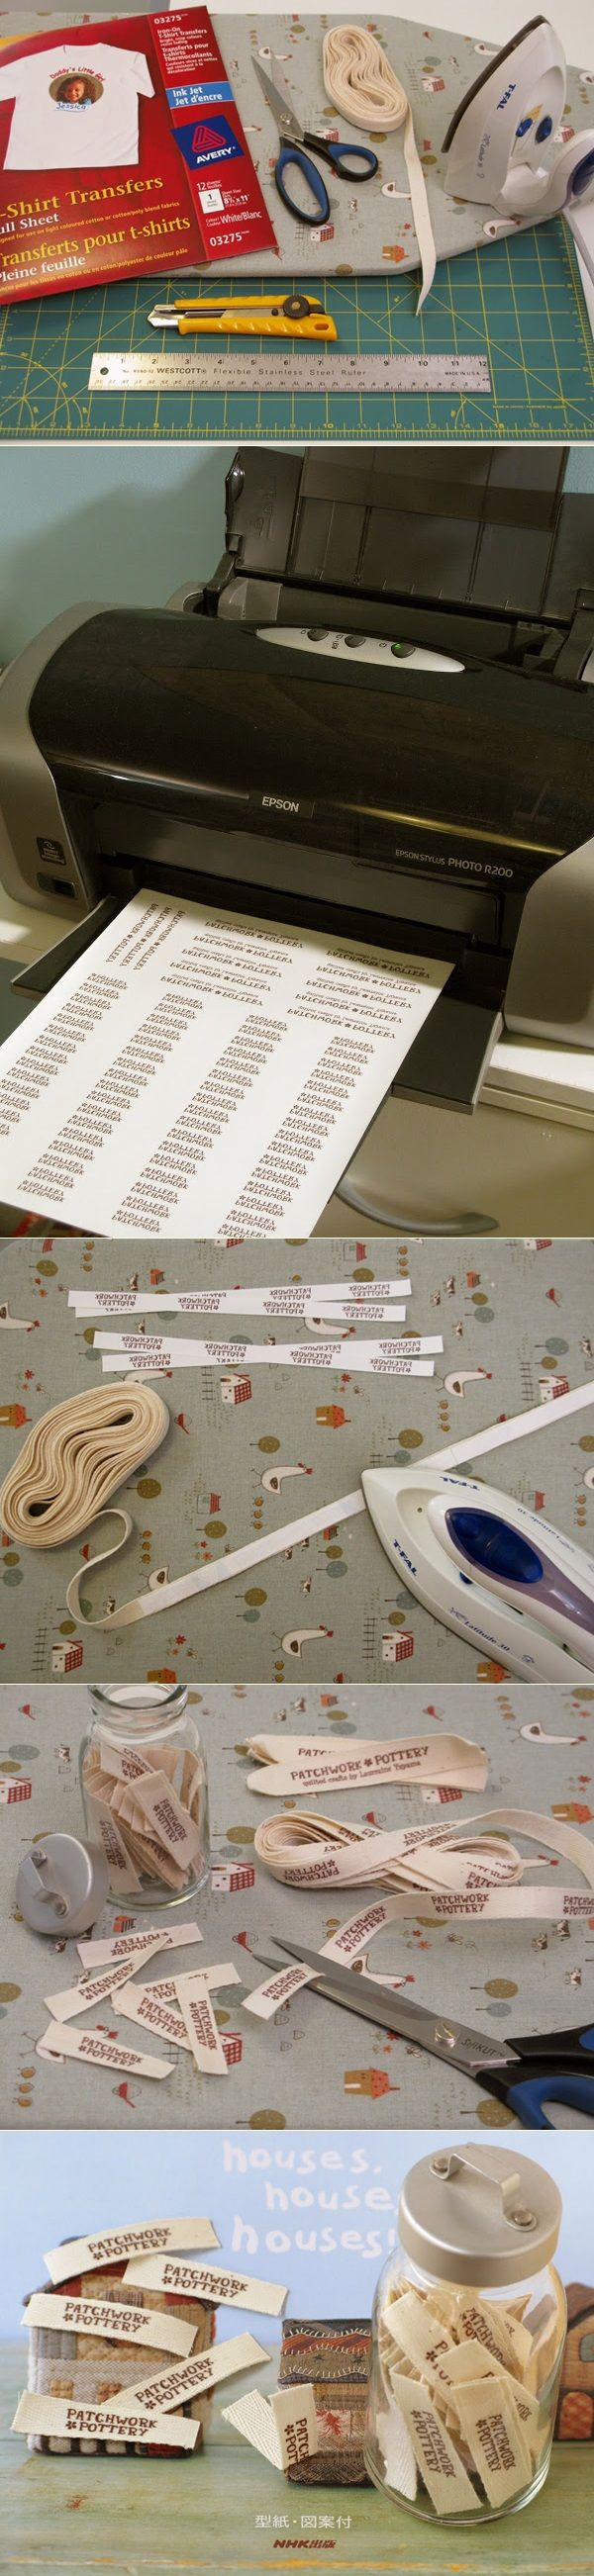 brand yourself and your homemade products with diy fabric labels.  xxx